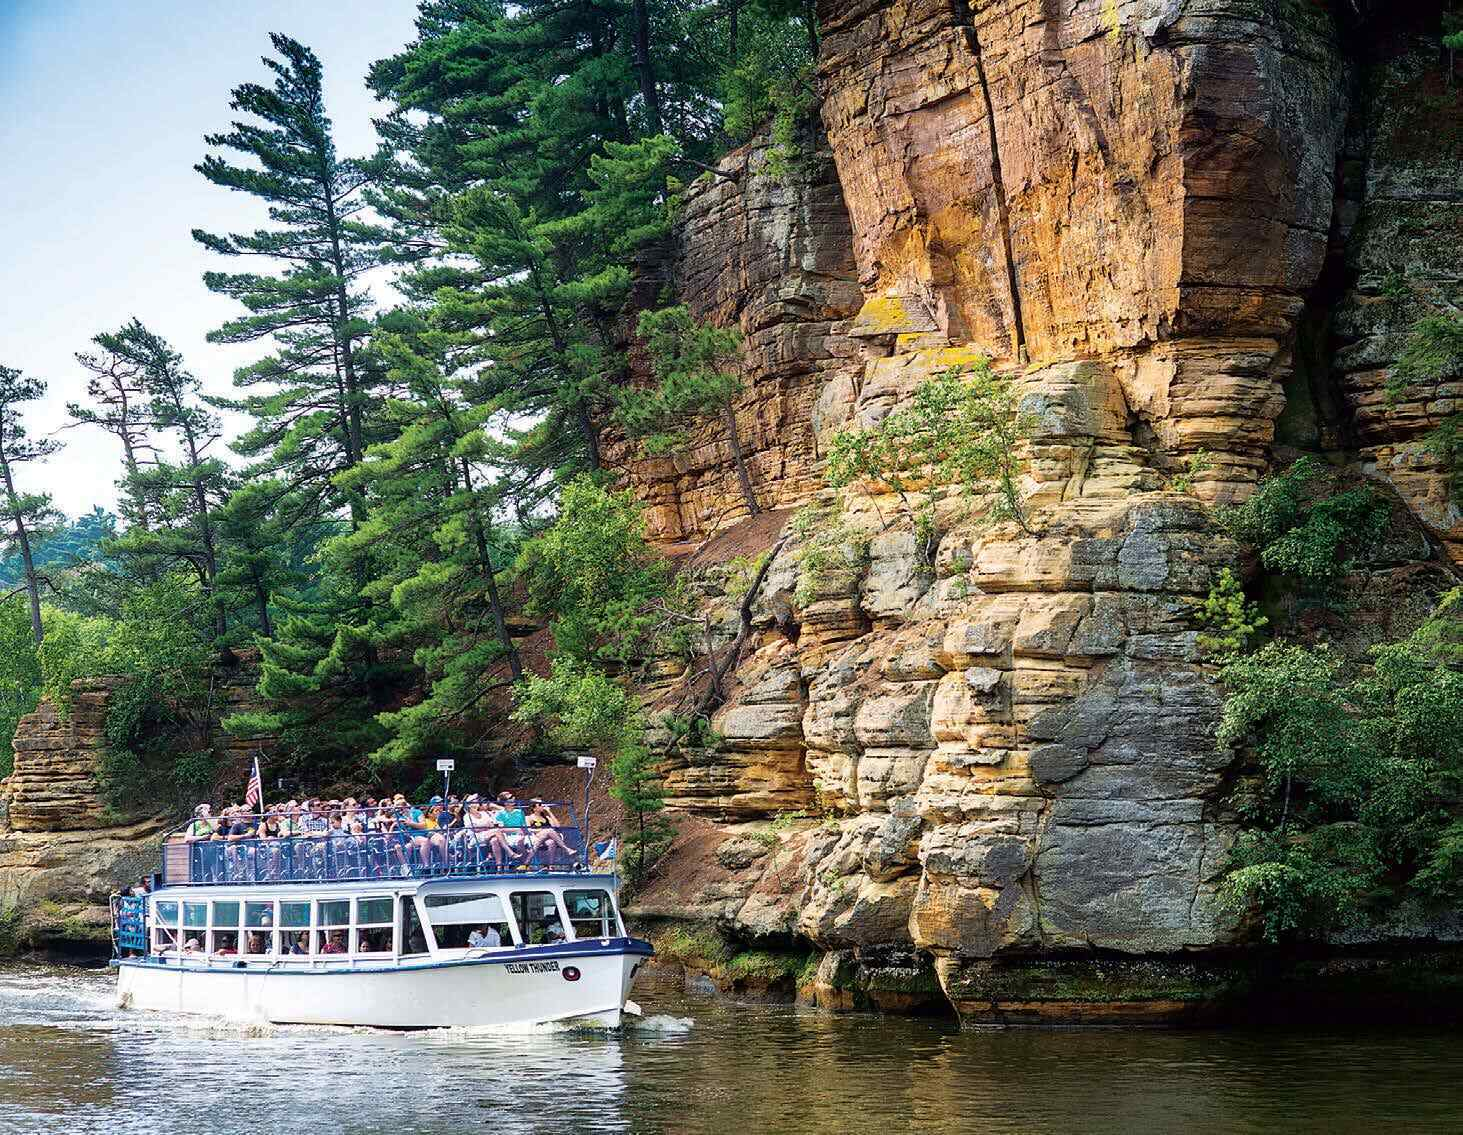 Ends 3 Days 3BR At Wyndham 73 Glacier Canyon At Wisconsin Dells Oct.1-4, 2019 - $270.00